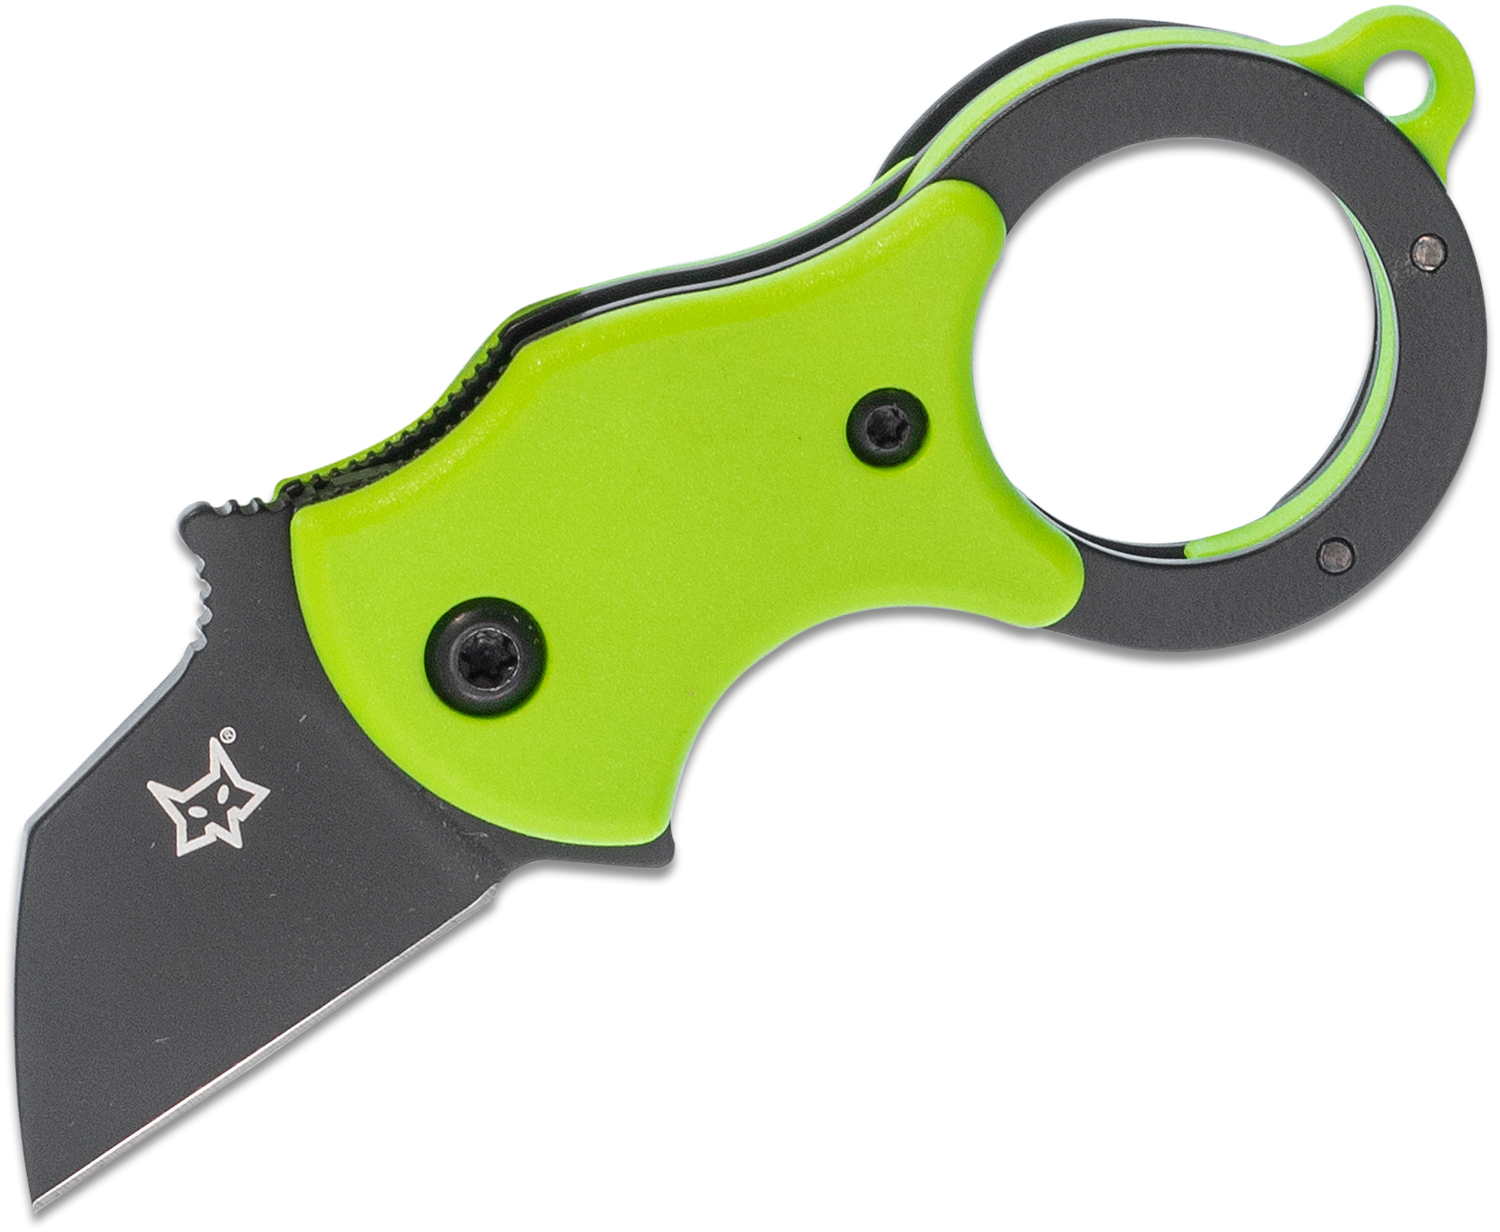 Fox FX-536 GB Mini-TA Folding Karambit Knife 1 inch Black Blade, Green FRN Handles